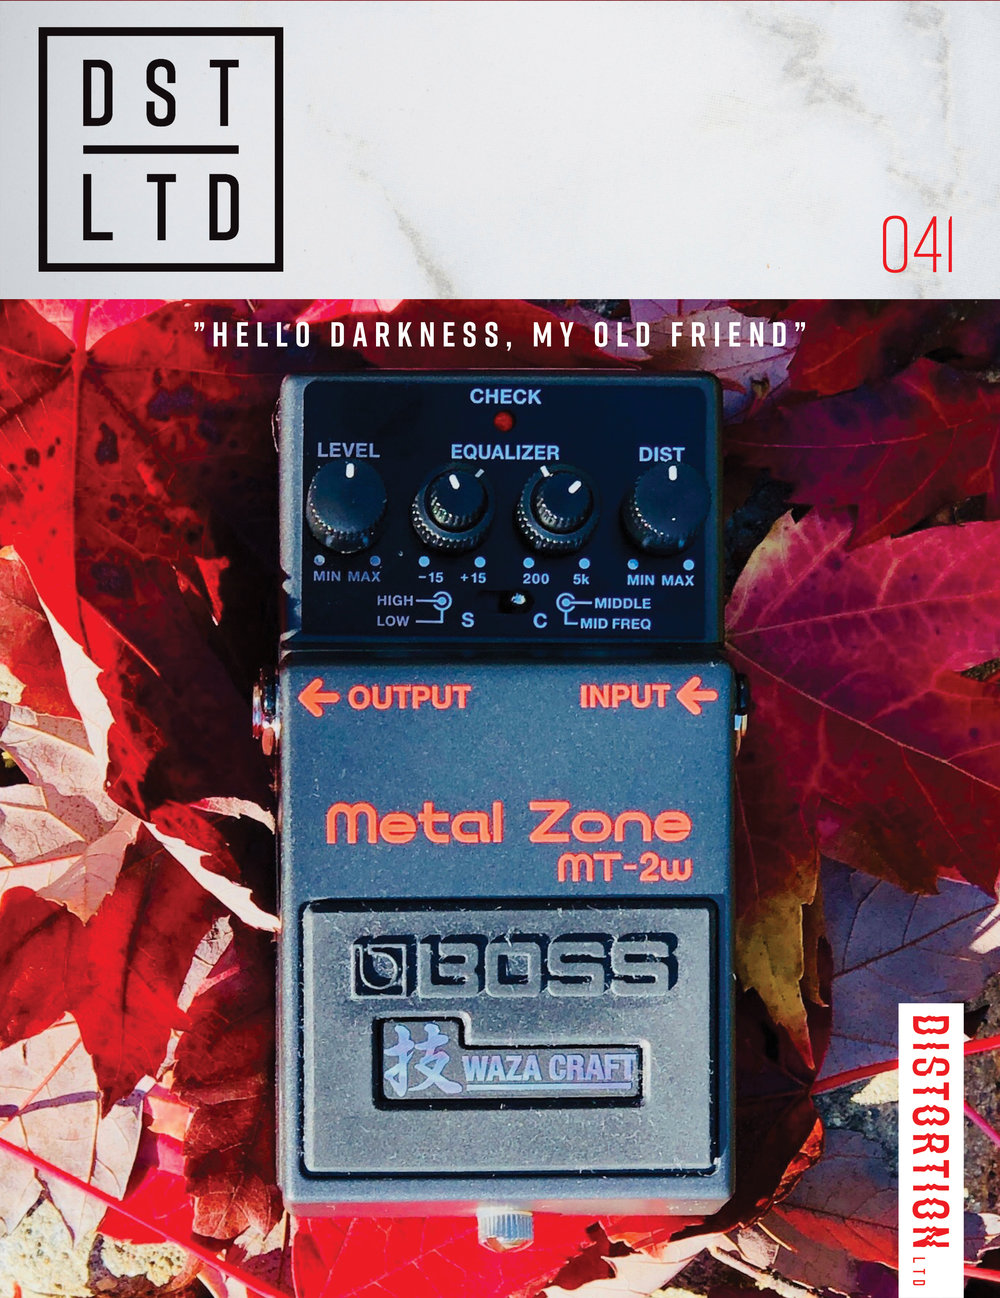 ISSUE 041 -